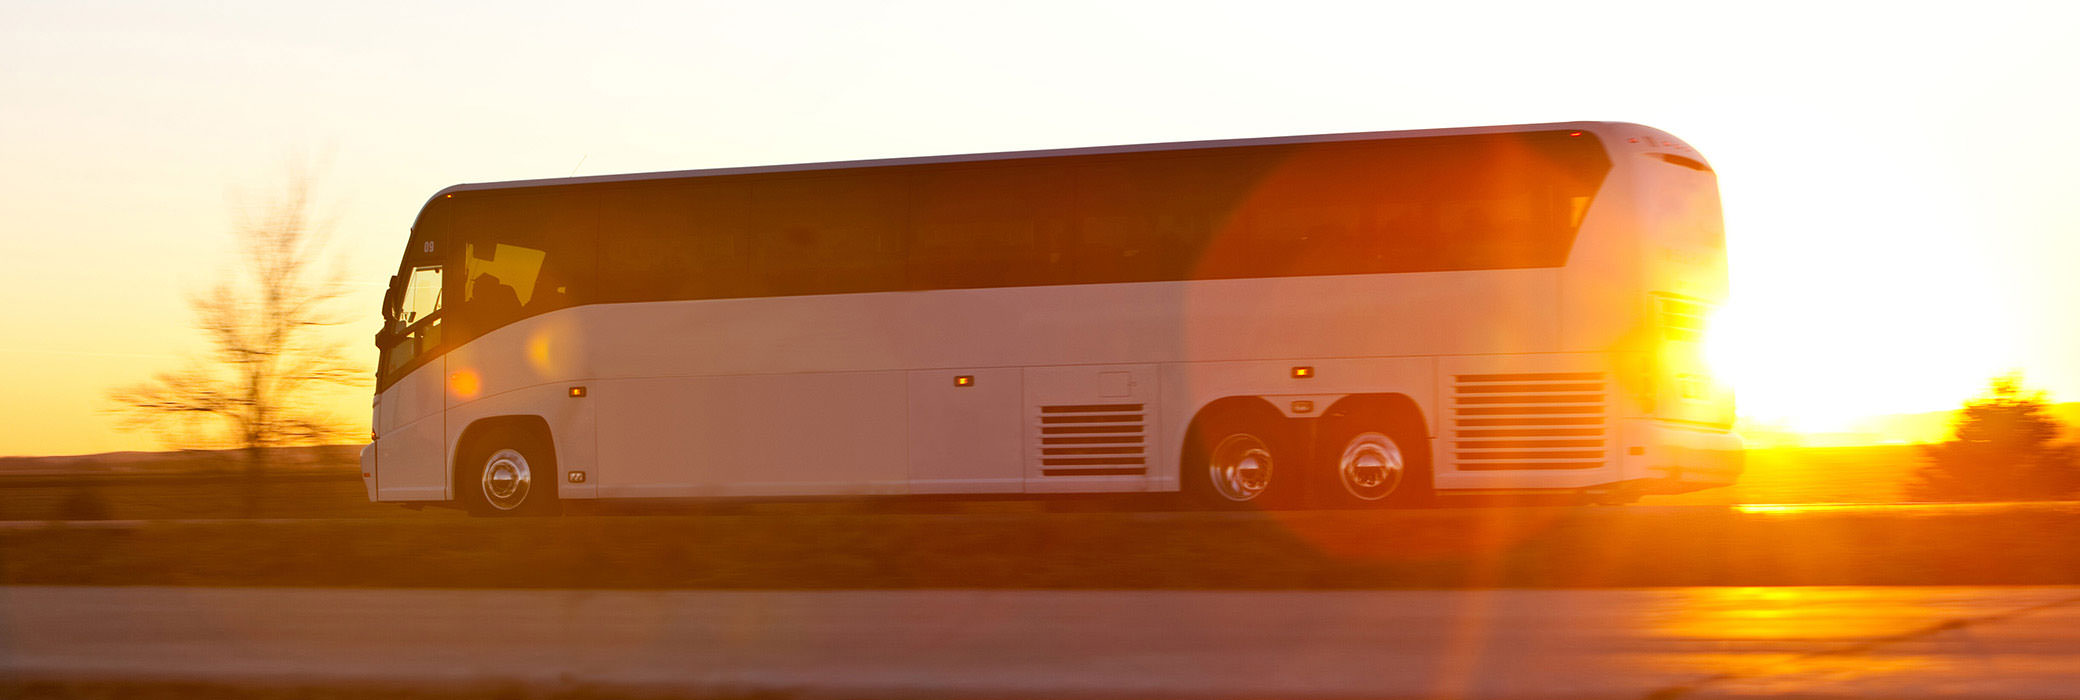 White coach driving in the sunset on a country road